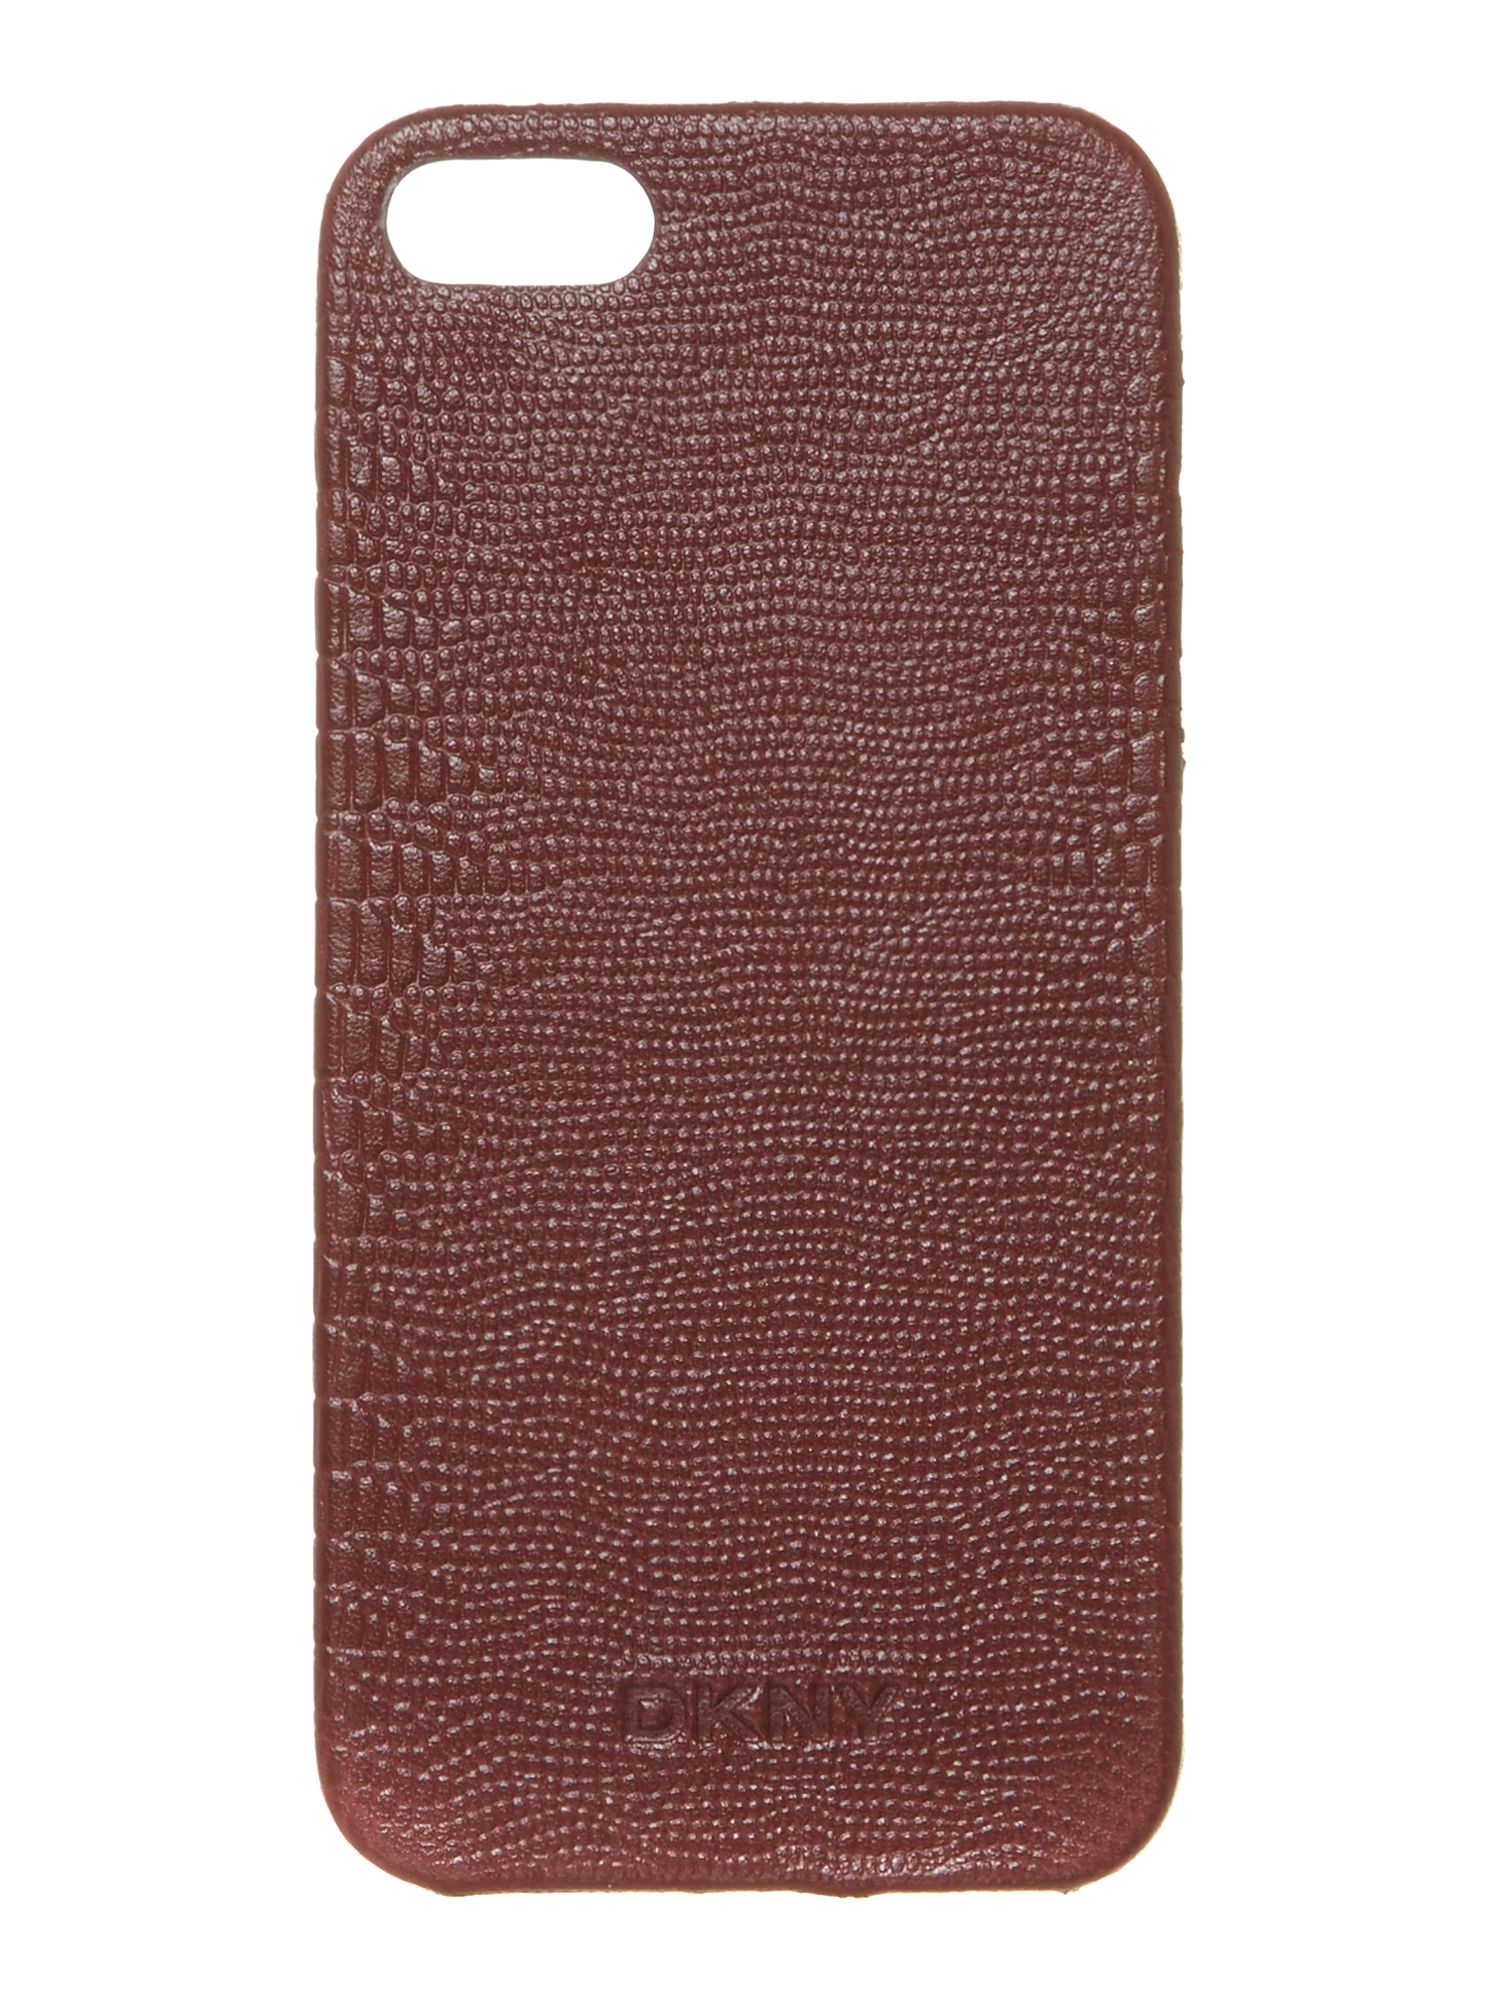 Lizard red leather Iphone case